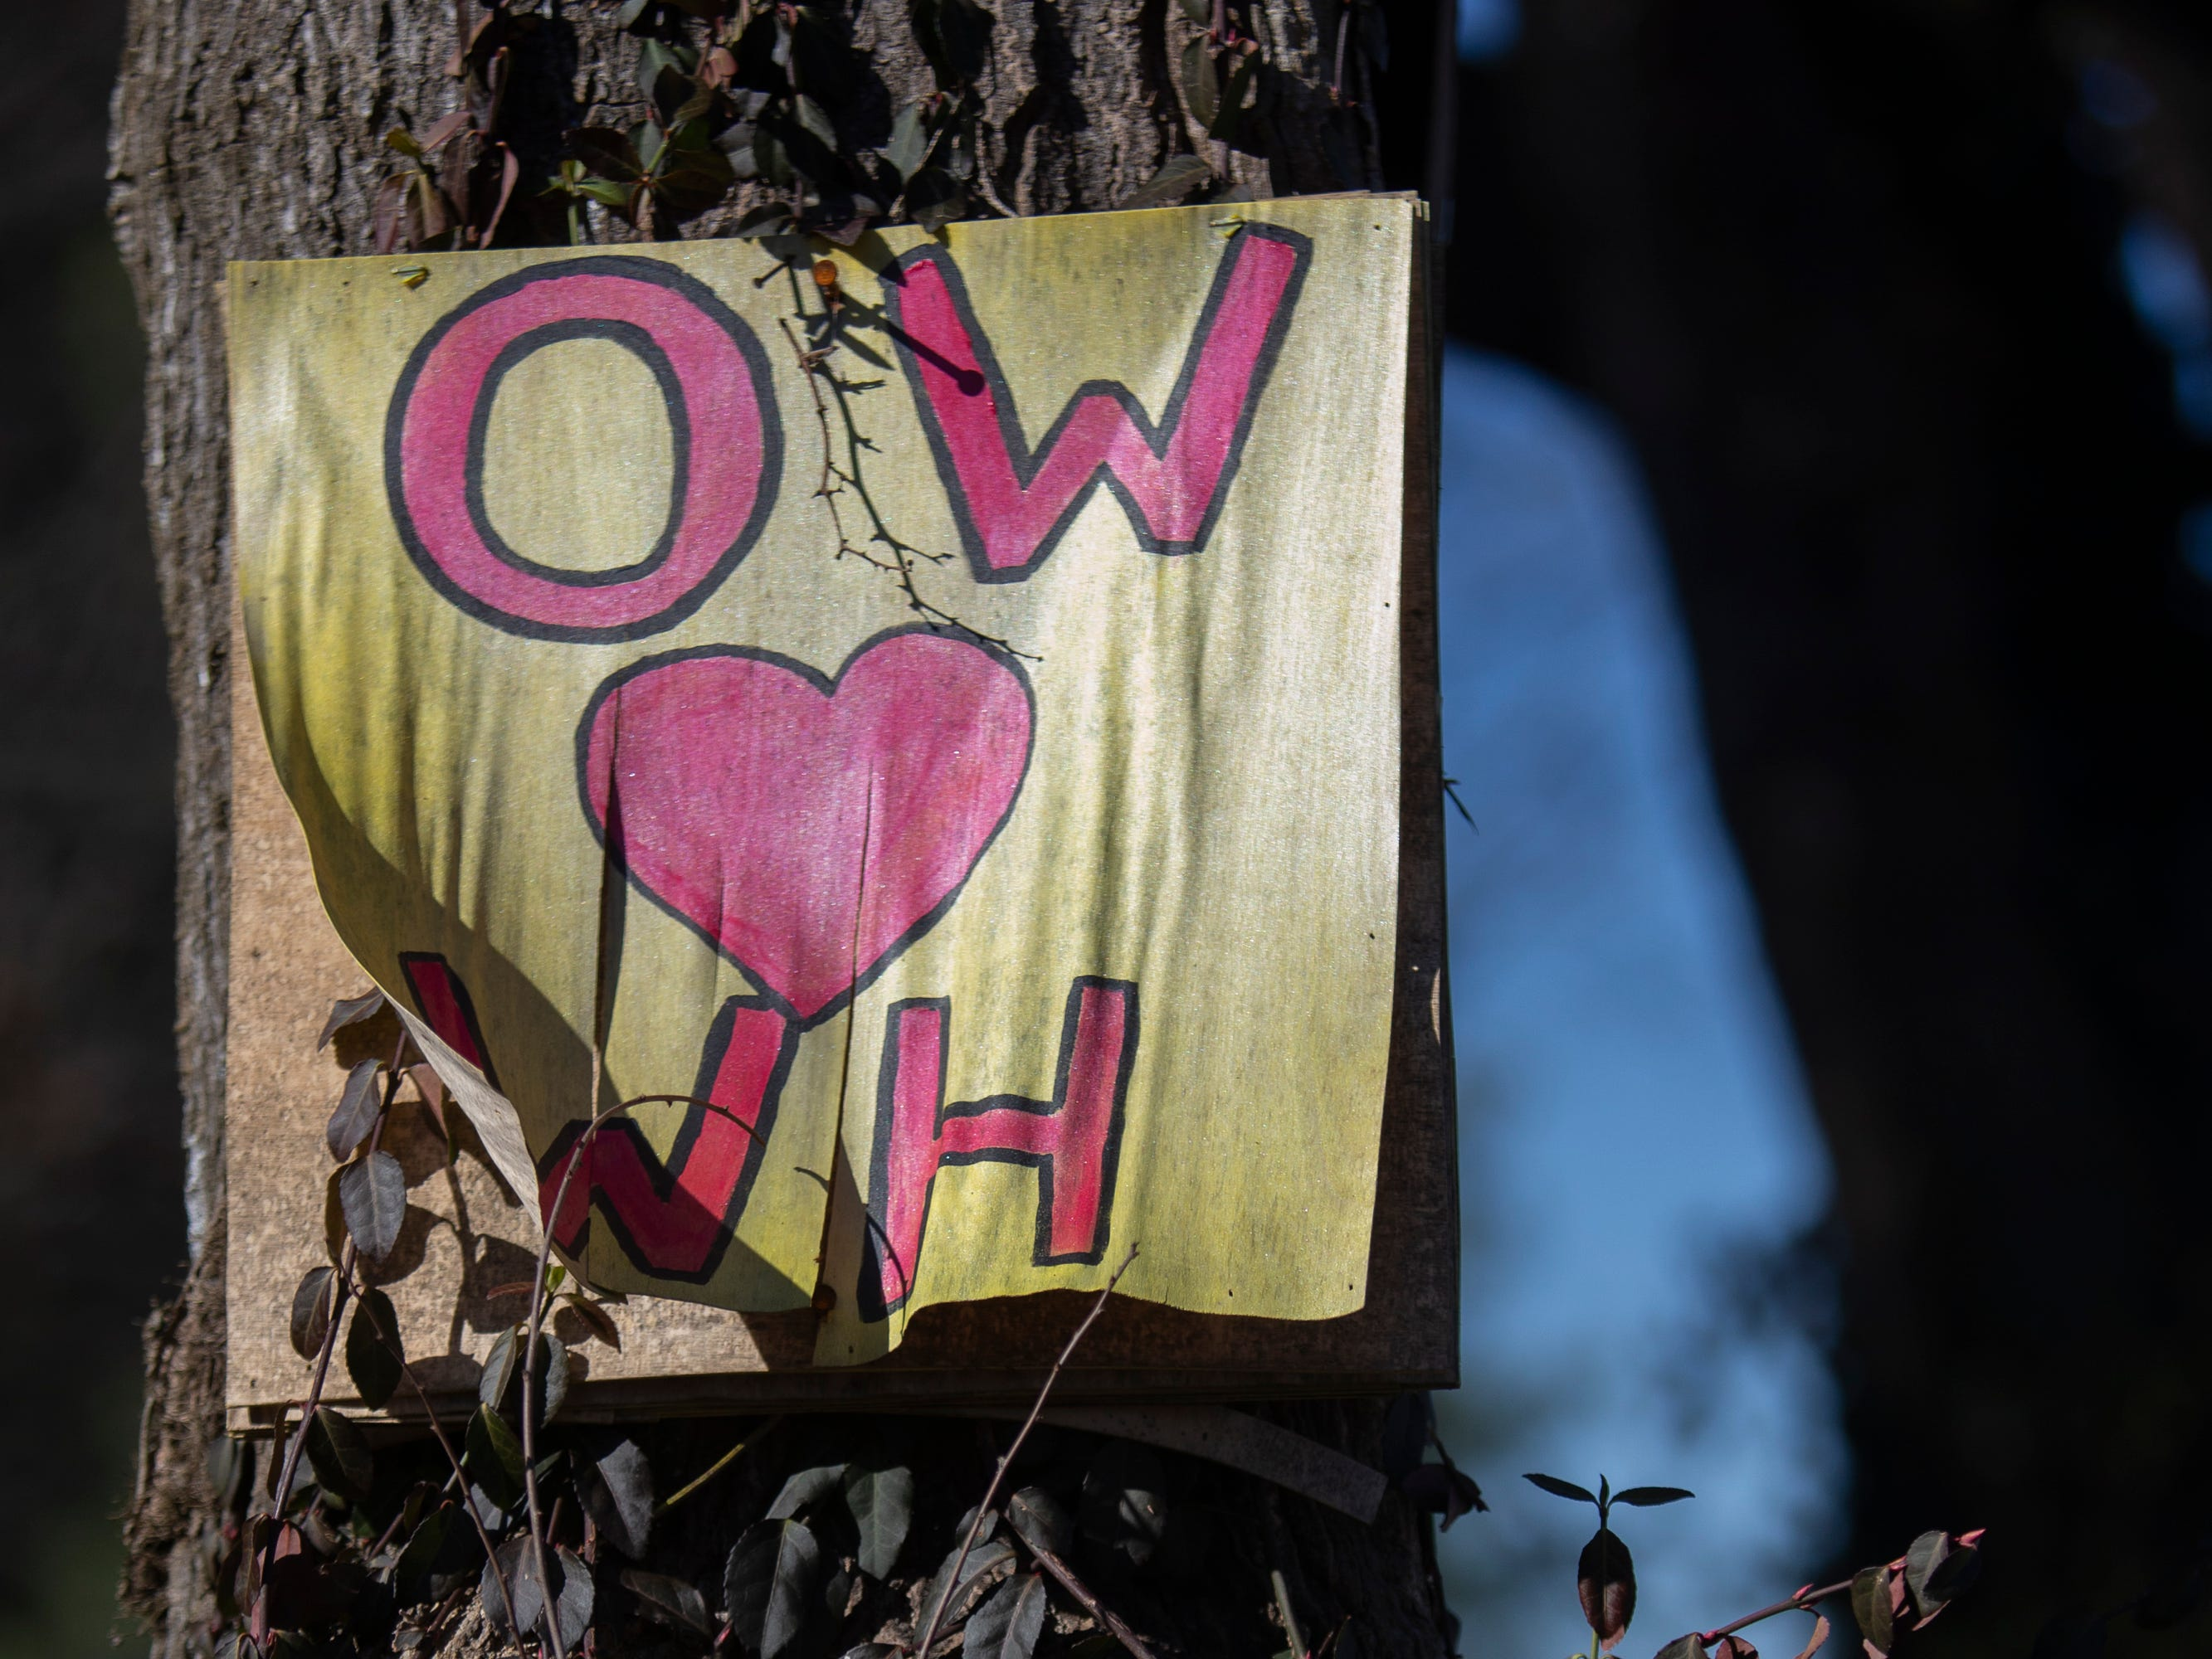 One of the love signs along the Lovers Lane stretch of Springdale Rd. Jan. 4, 2019.